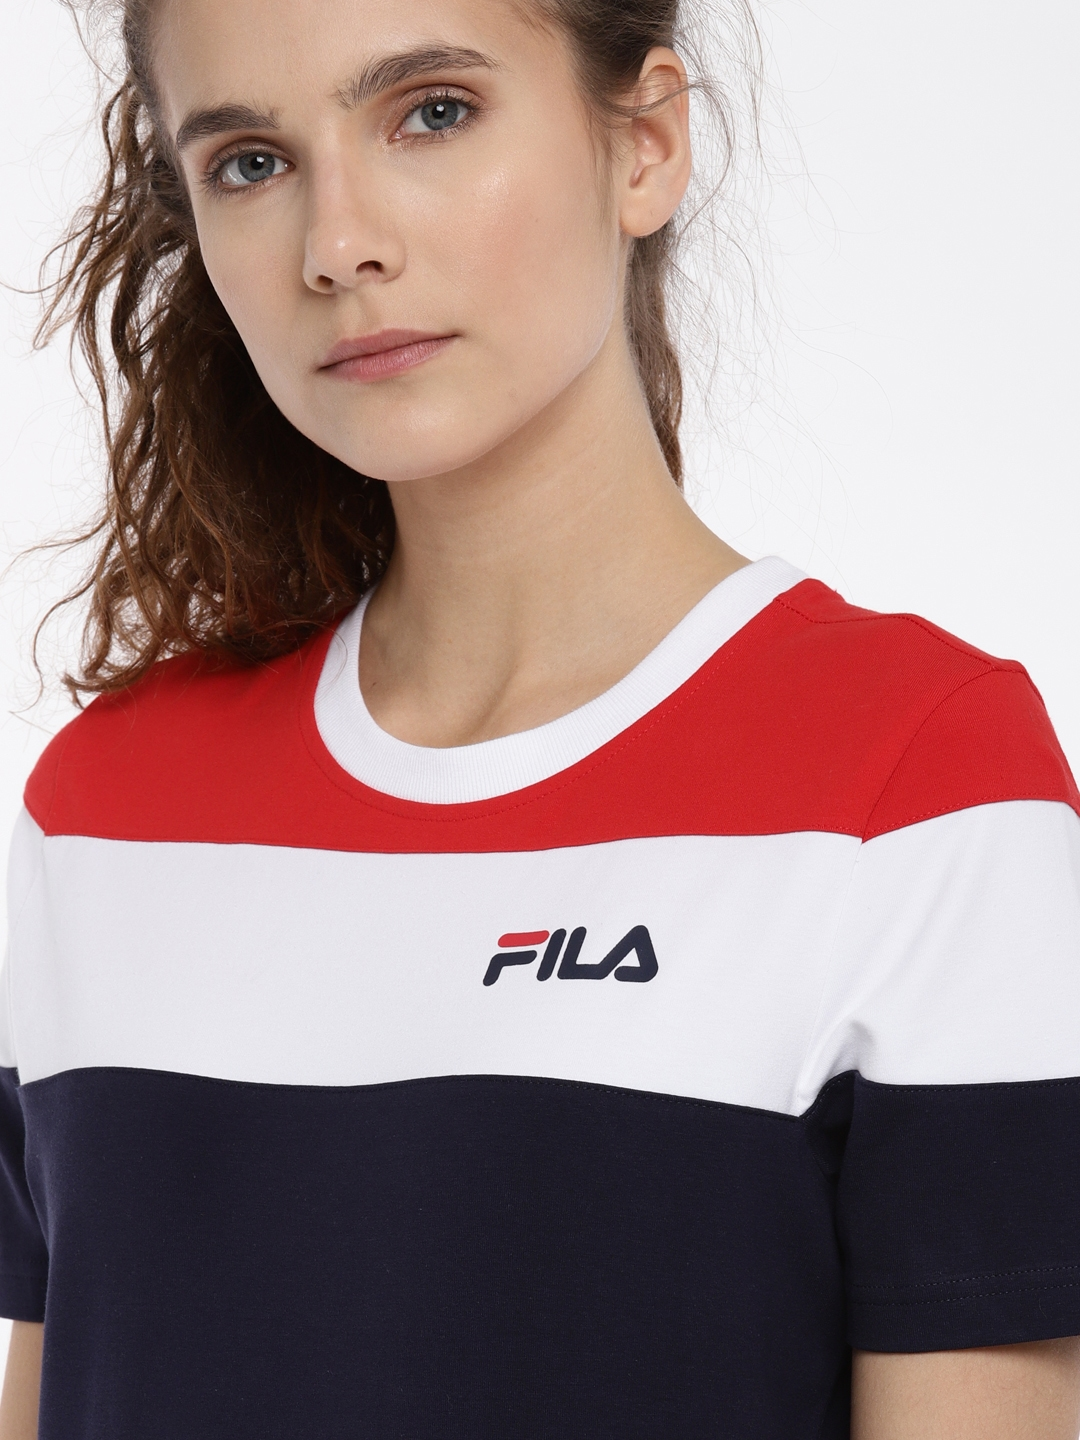 b08426524f2bb Buy FILA Women Navy & White Colourblocked Round Neck T Shirt ...